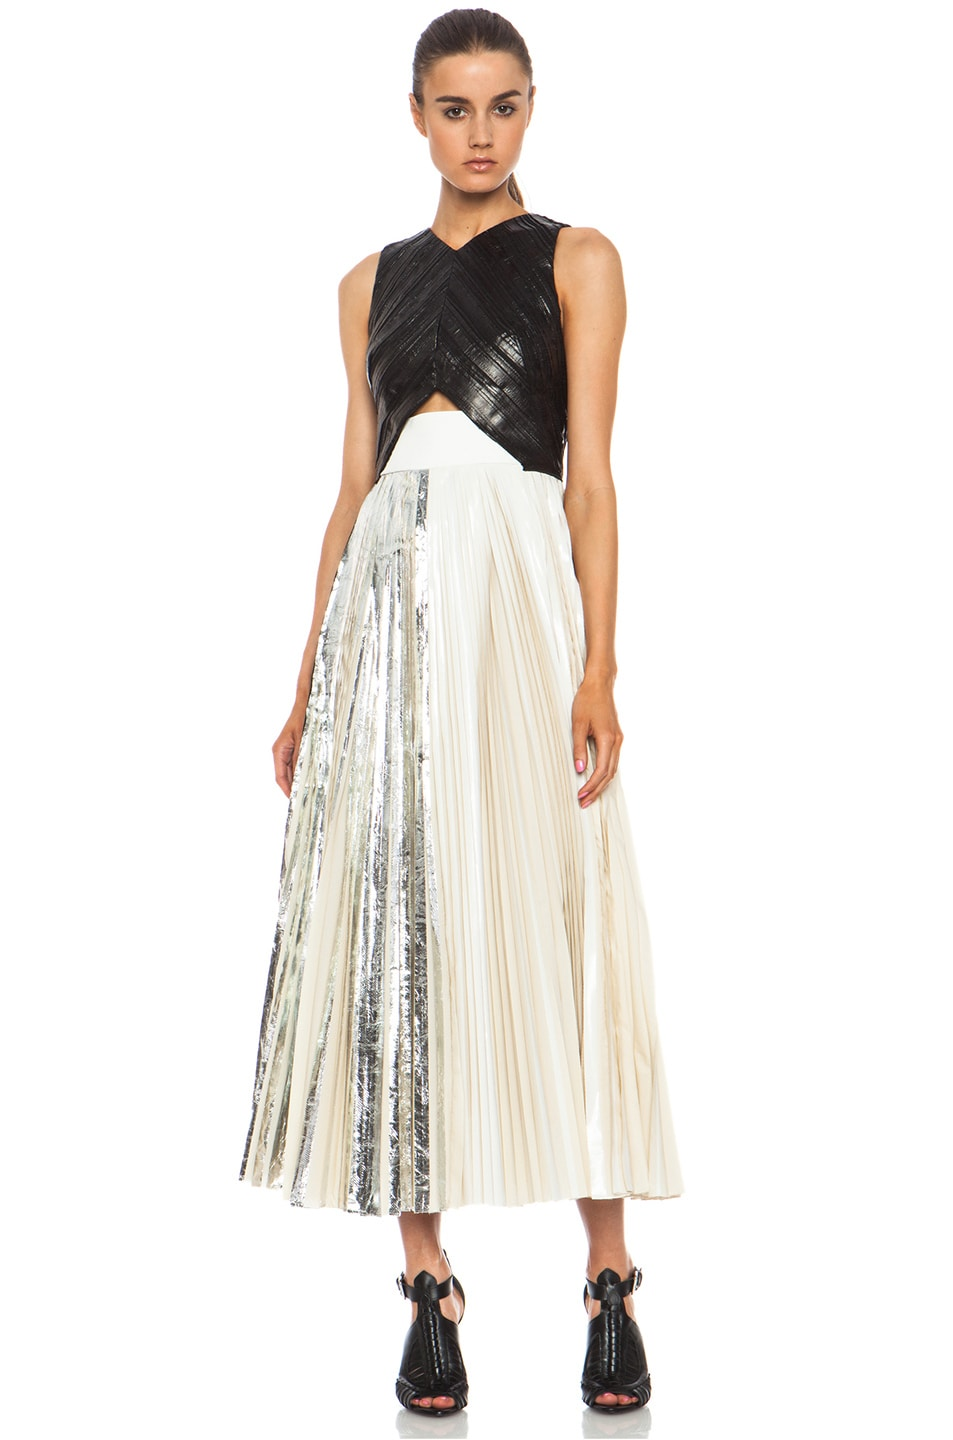 Image 2 of Proenza Schouler Foil Print Poly Pleated Dress in Black, Silver & White